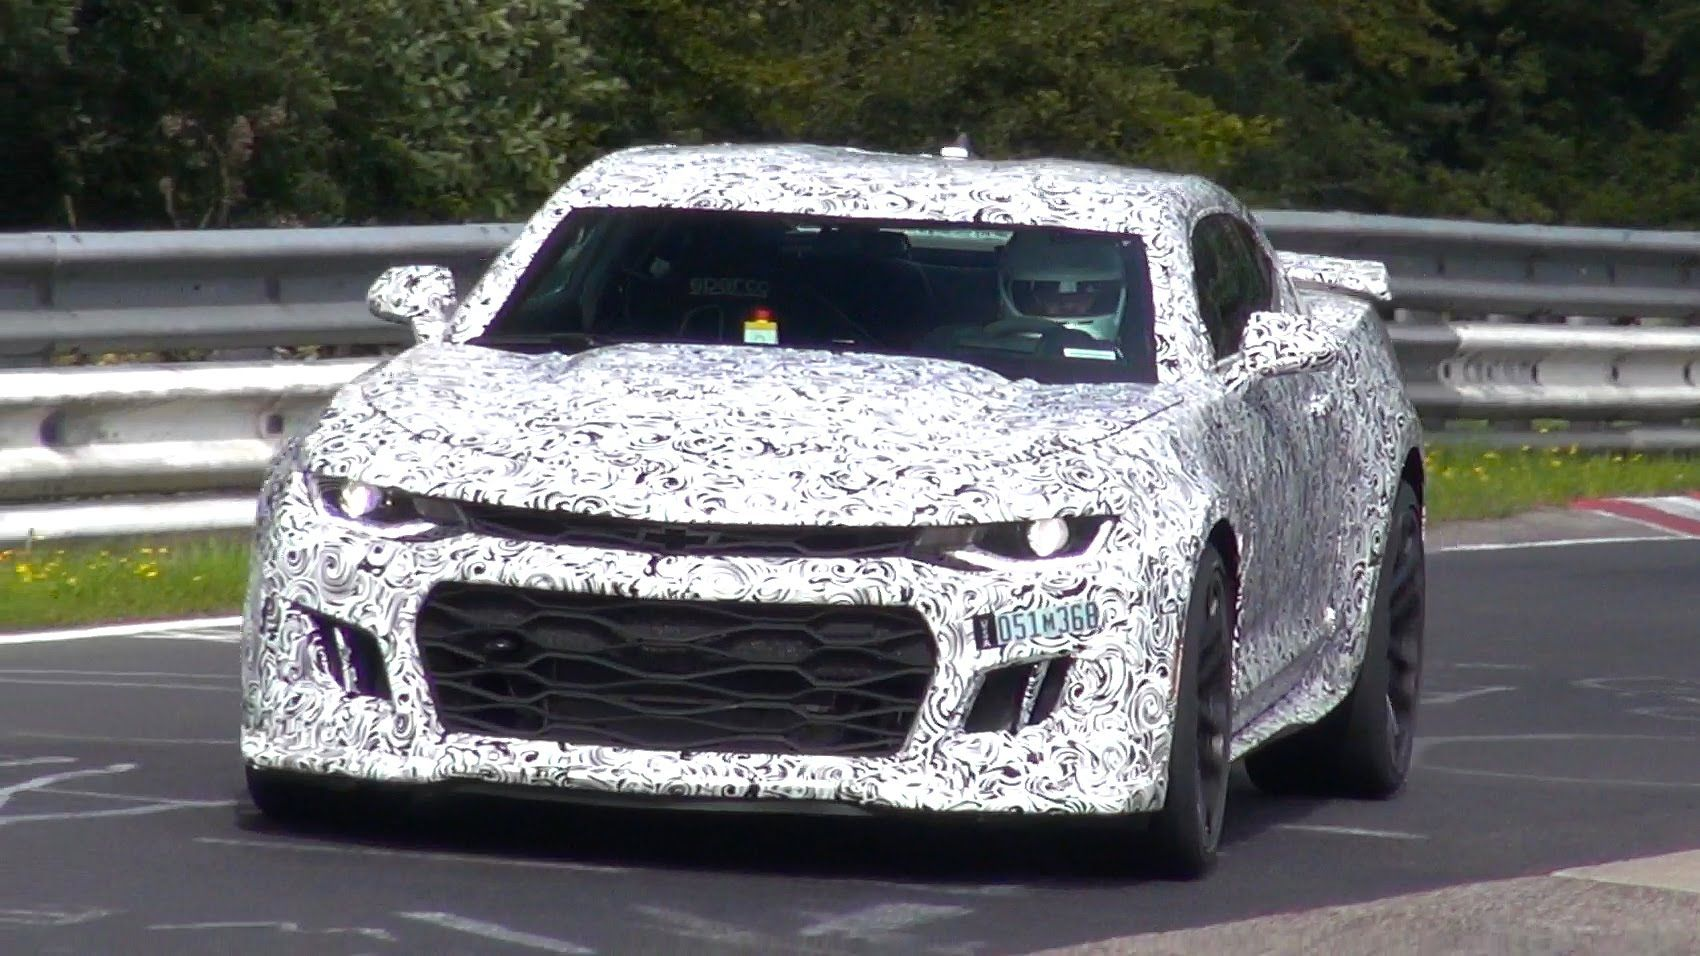 Spyvideo 2017 Chevrolet Camaro Zl1 Testing On The Nurburgring